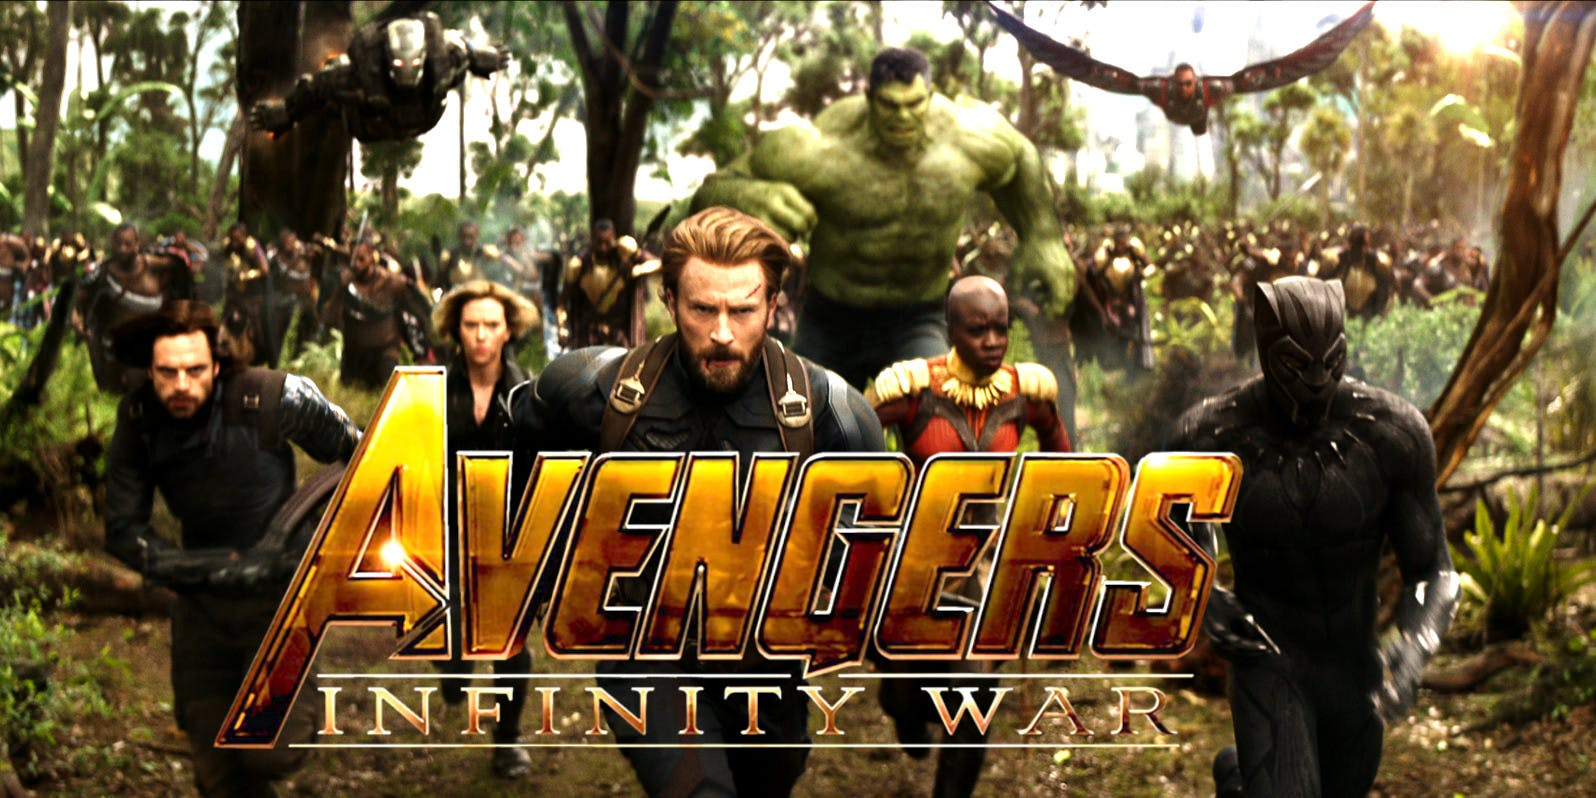 movie review | avengers infinity war: marvel's 19th film showcases